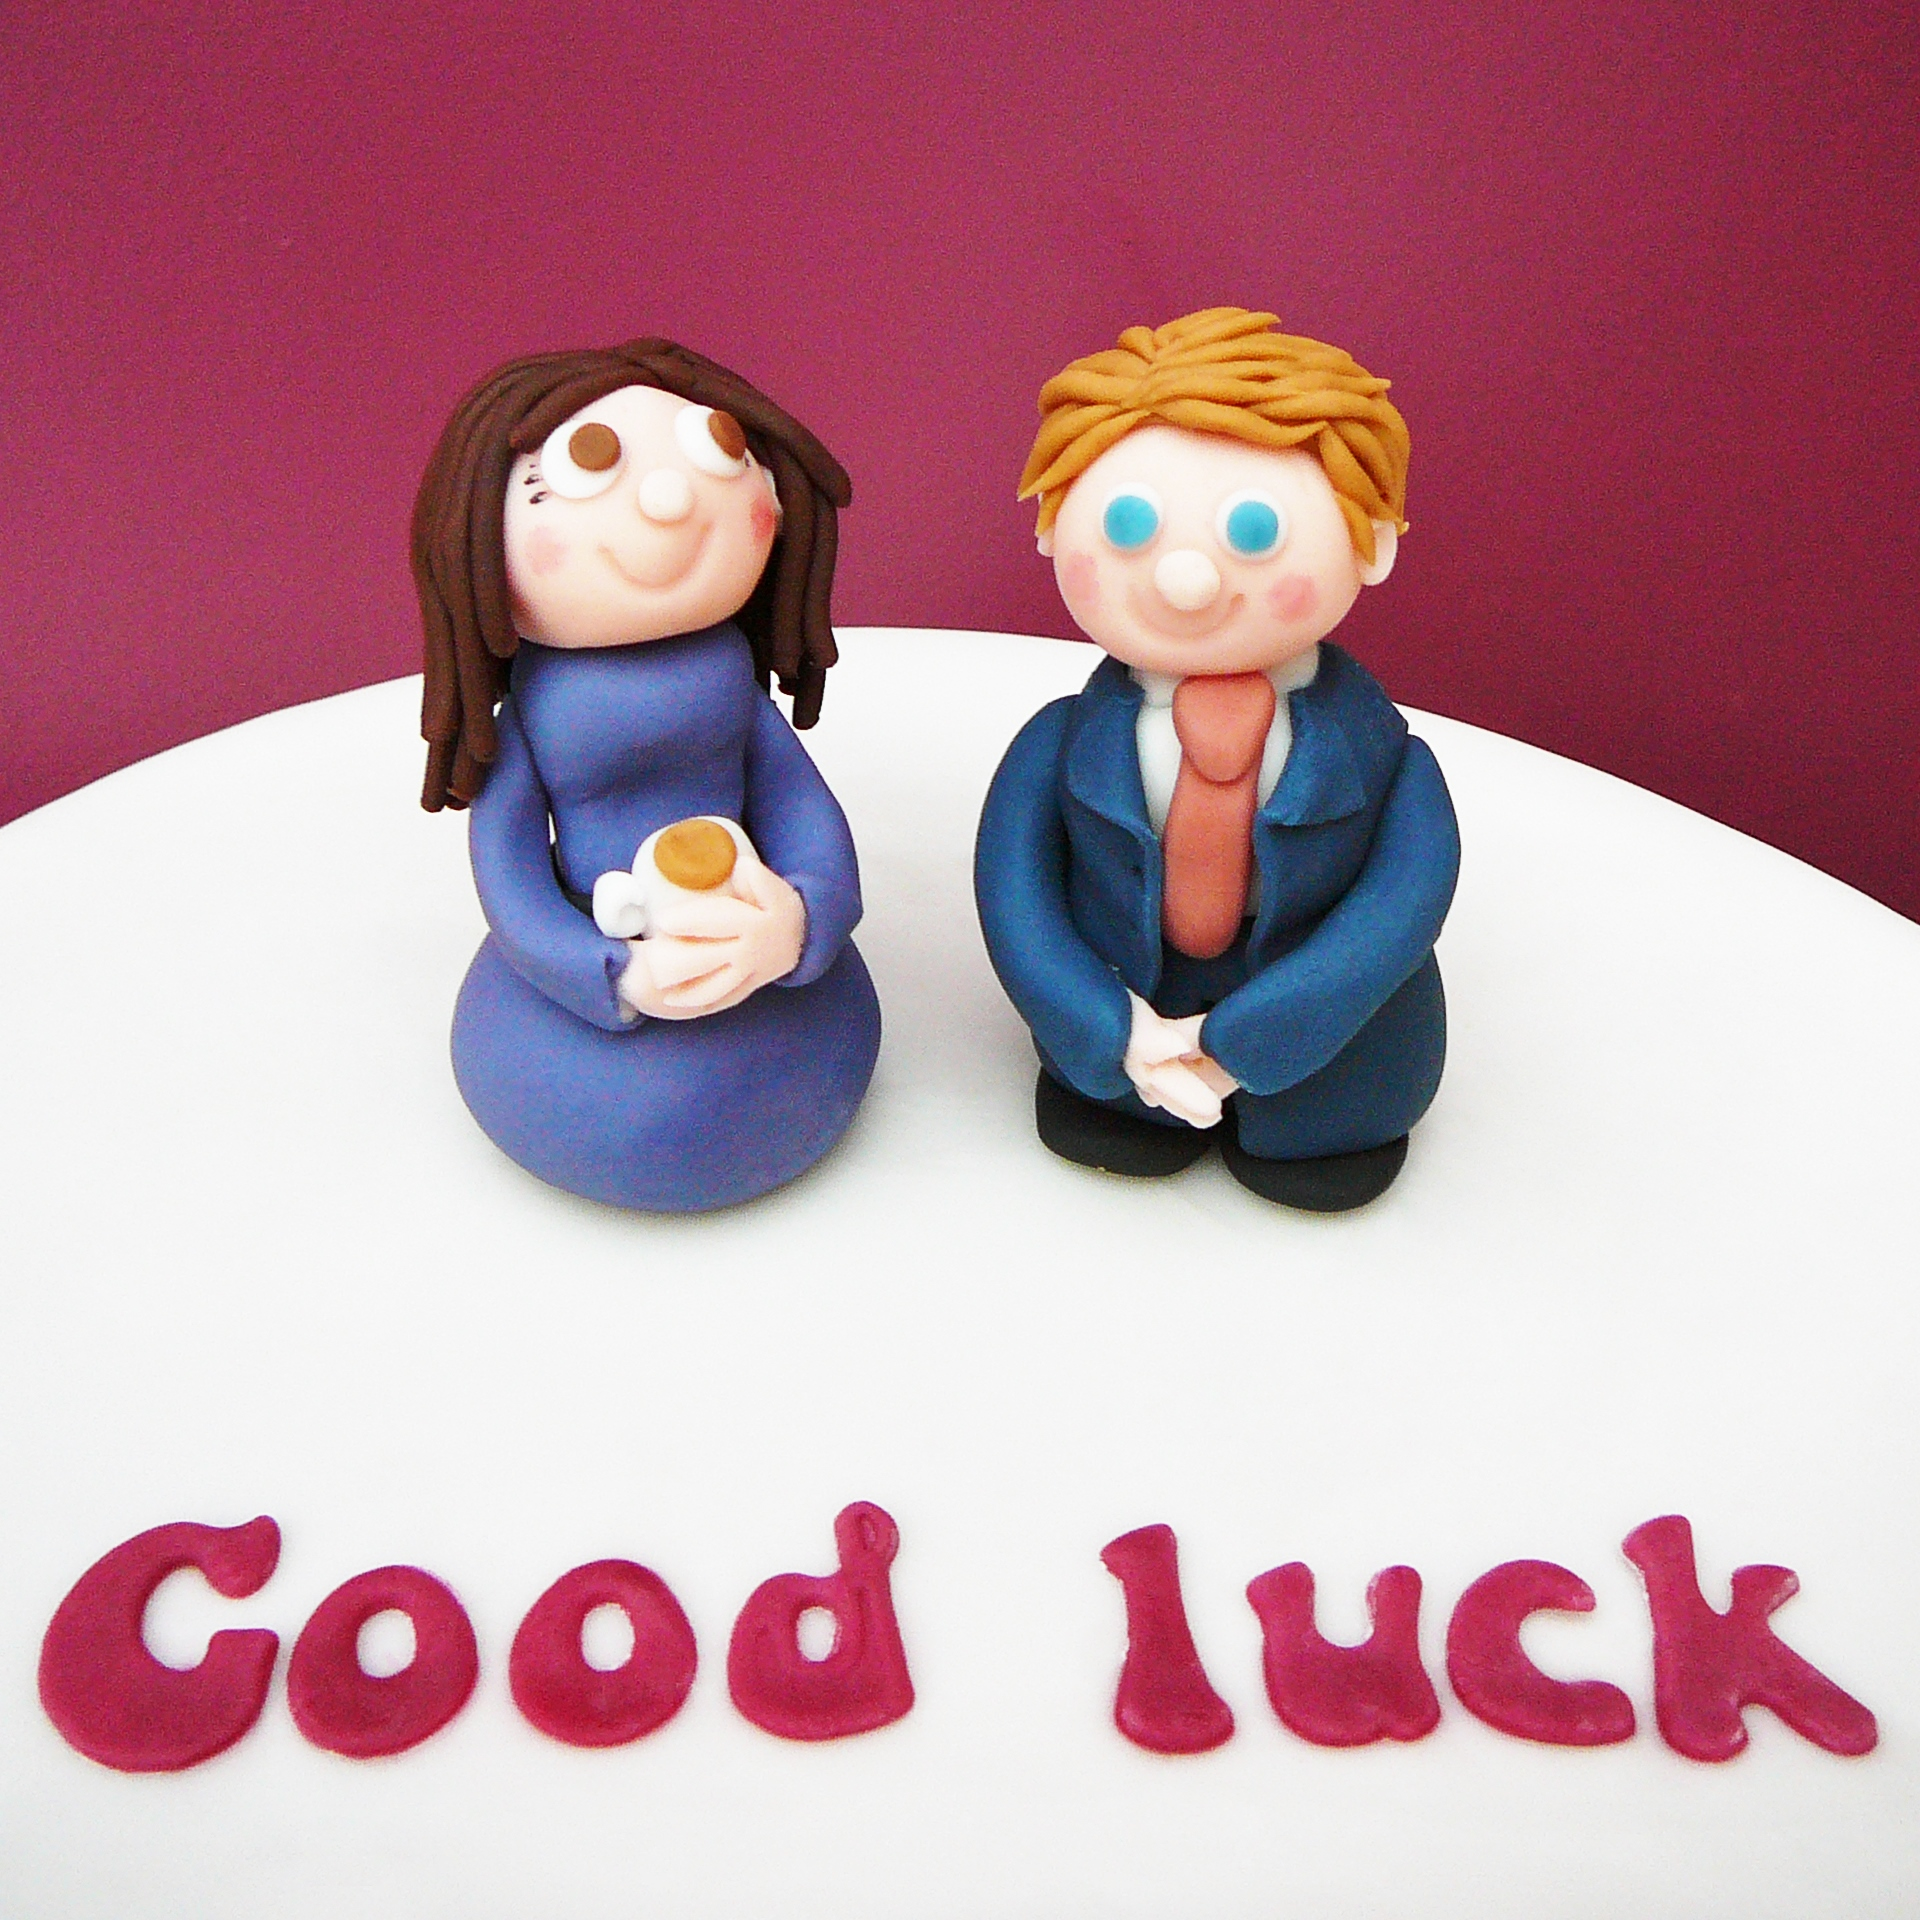 Good luck in your next job cake